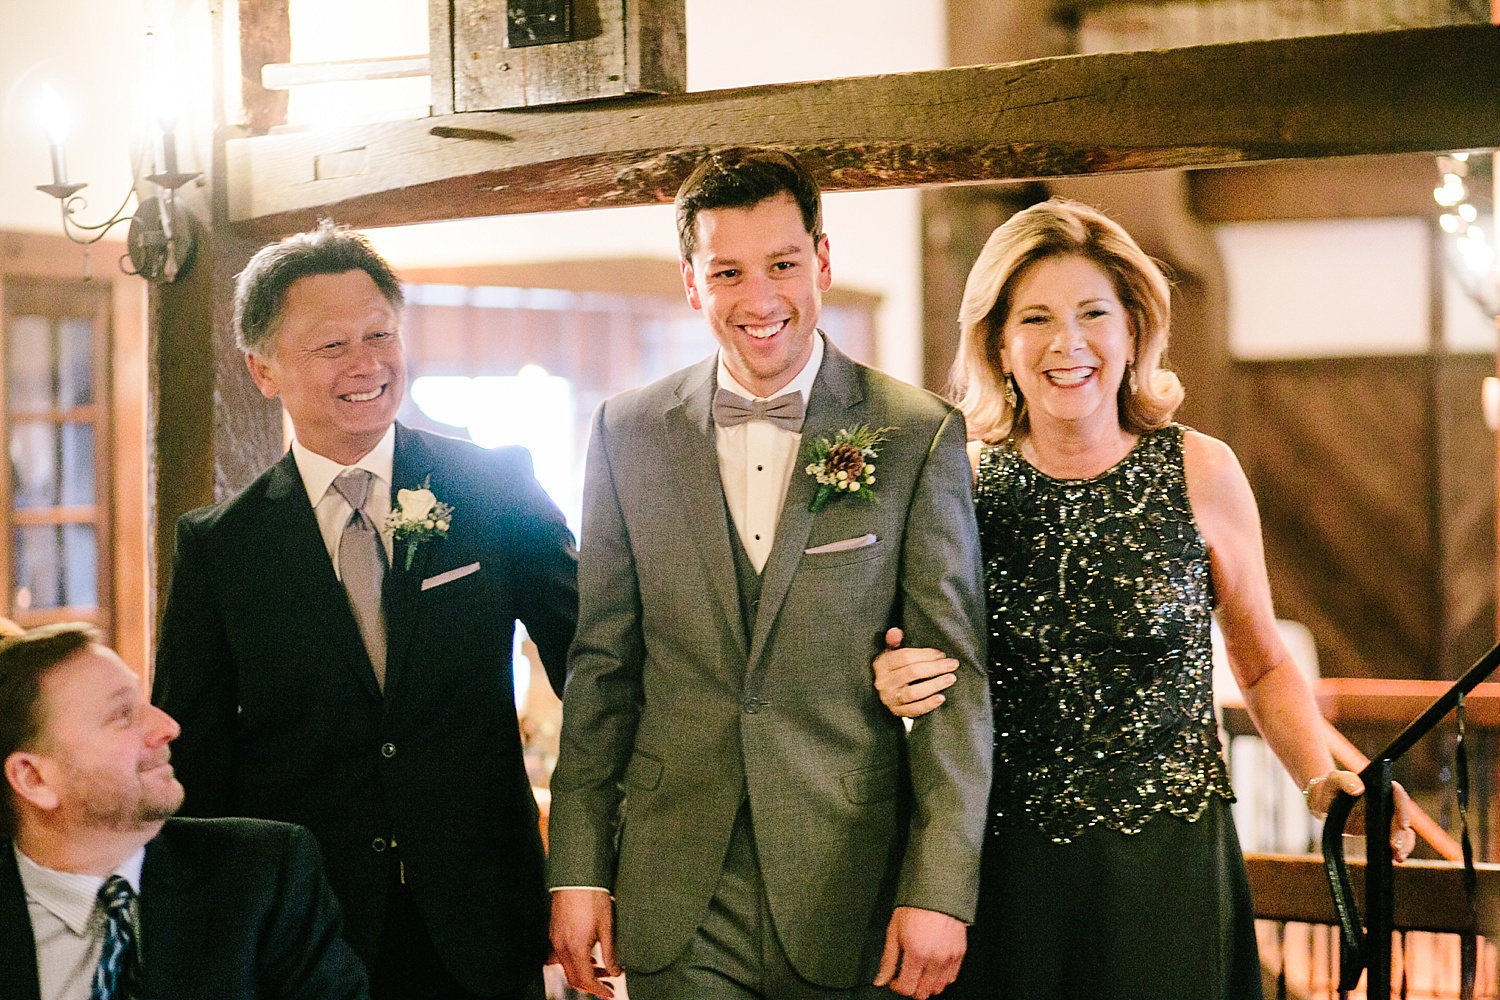 jessdavid_barnonbridge_phoenixville_winter_wedding_image_064.jpg